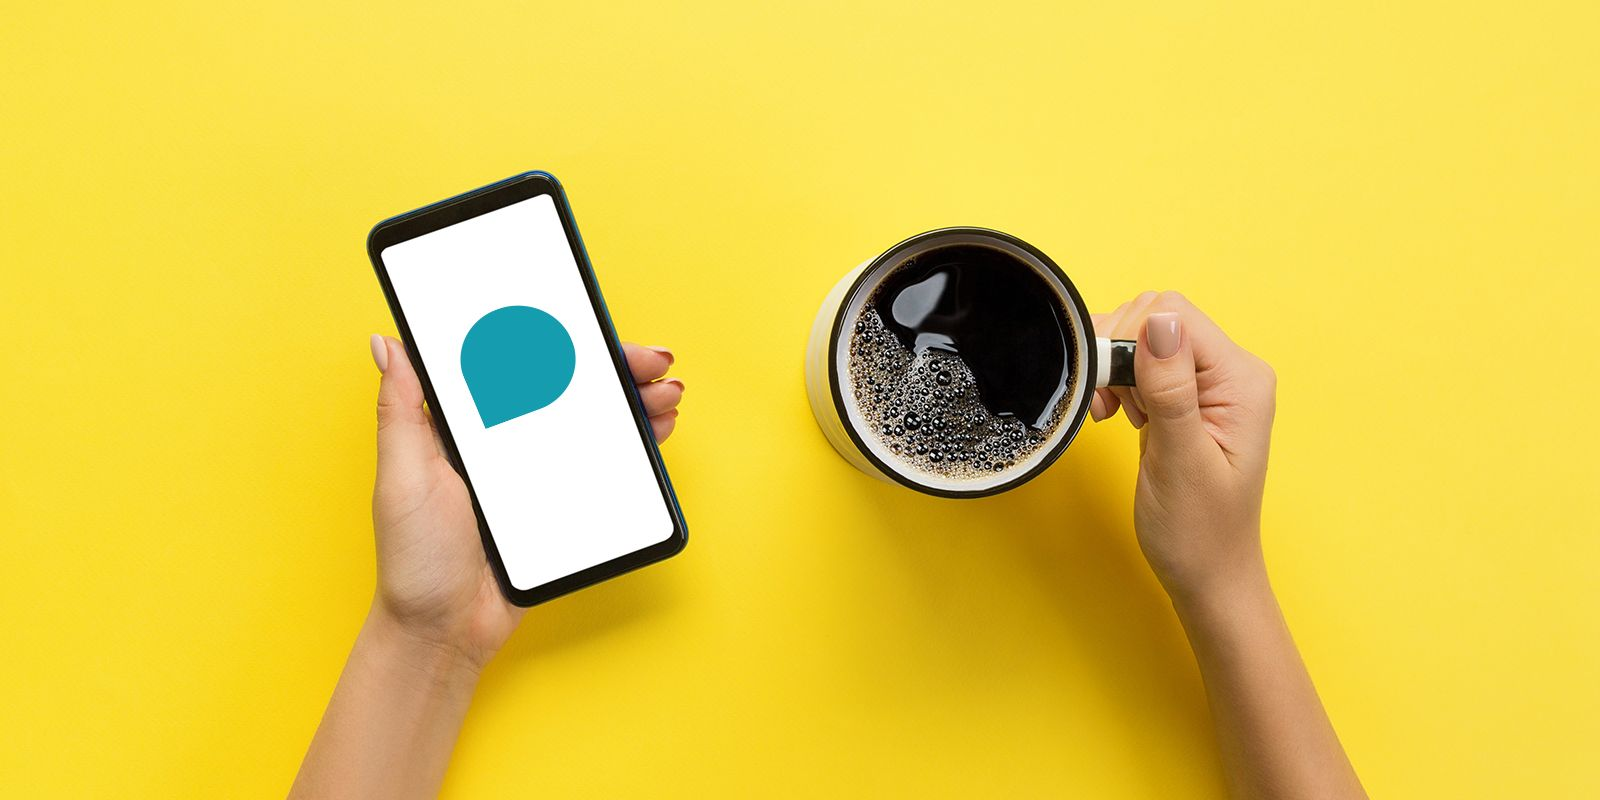 A picture of female hands holding a mobile phone in one hand and a cup of coffee in the other with a yellow background on the digital PR services page.